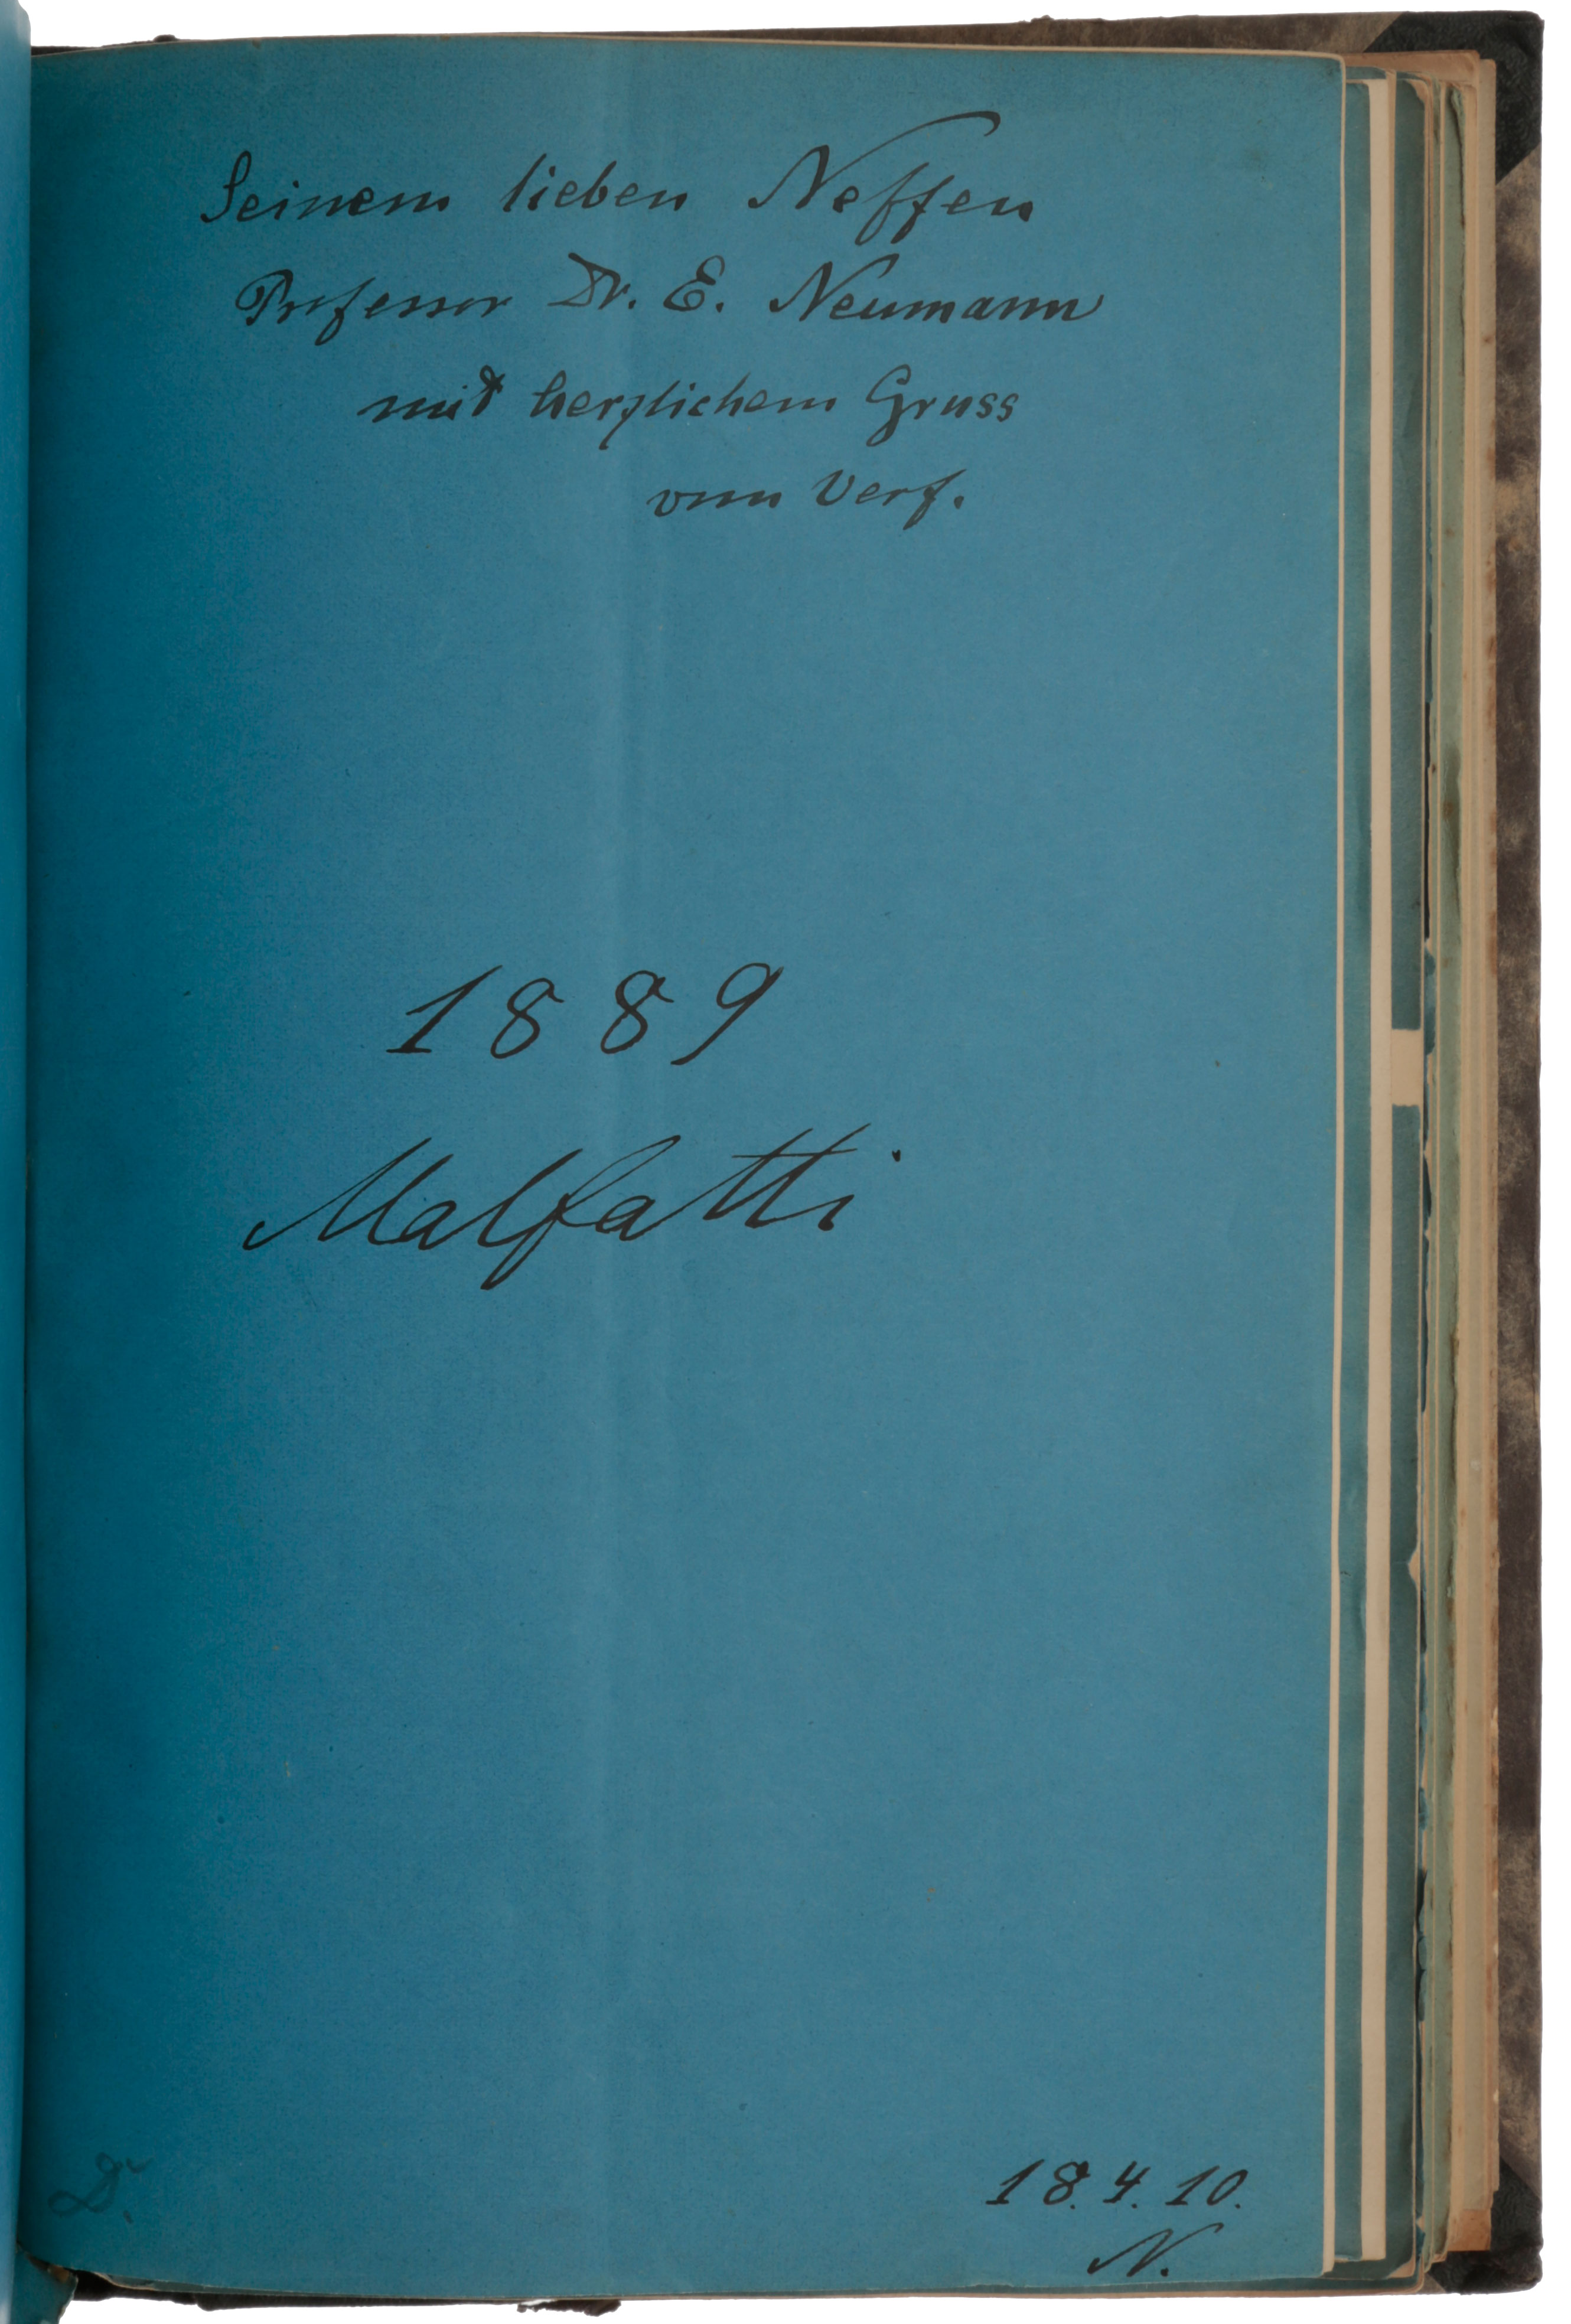 Bound collection of some 140 offprints, of which 28 are inscribed and several have annotations in the text, documenting Neumann's contributions to electromagnetism and potential theory, the subjects for which he is best known today. Carl Gottfried NEUMANN.